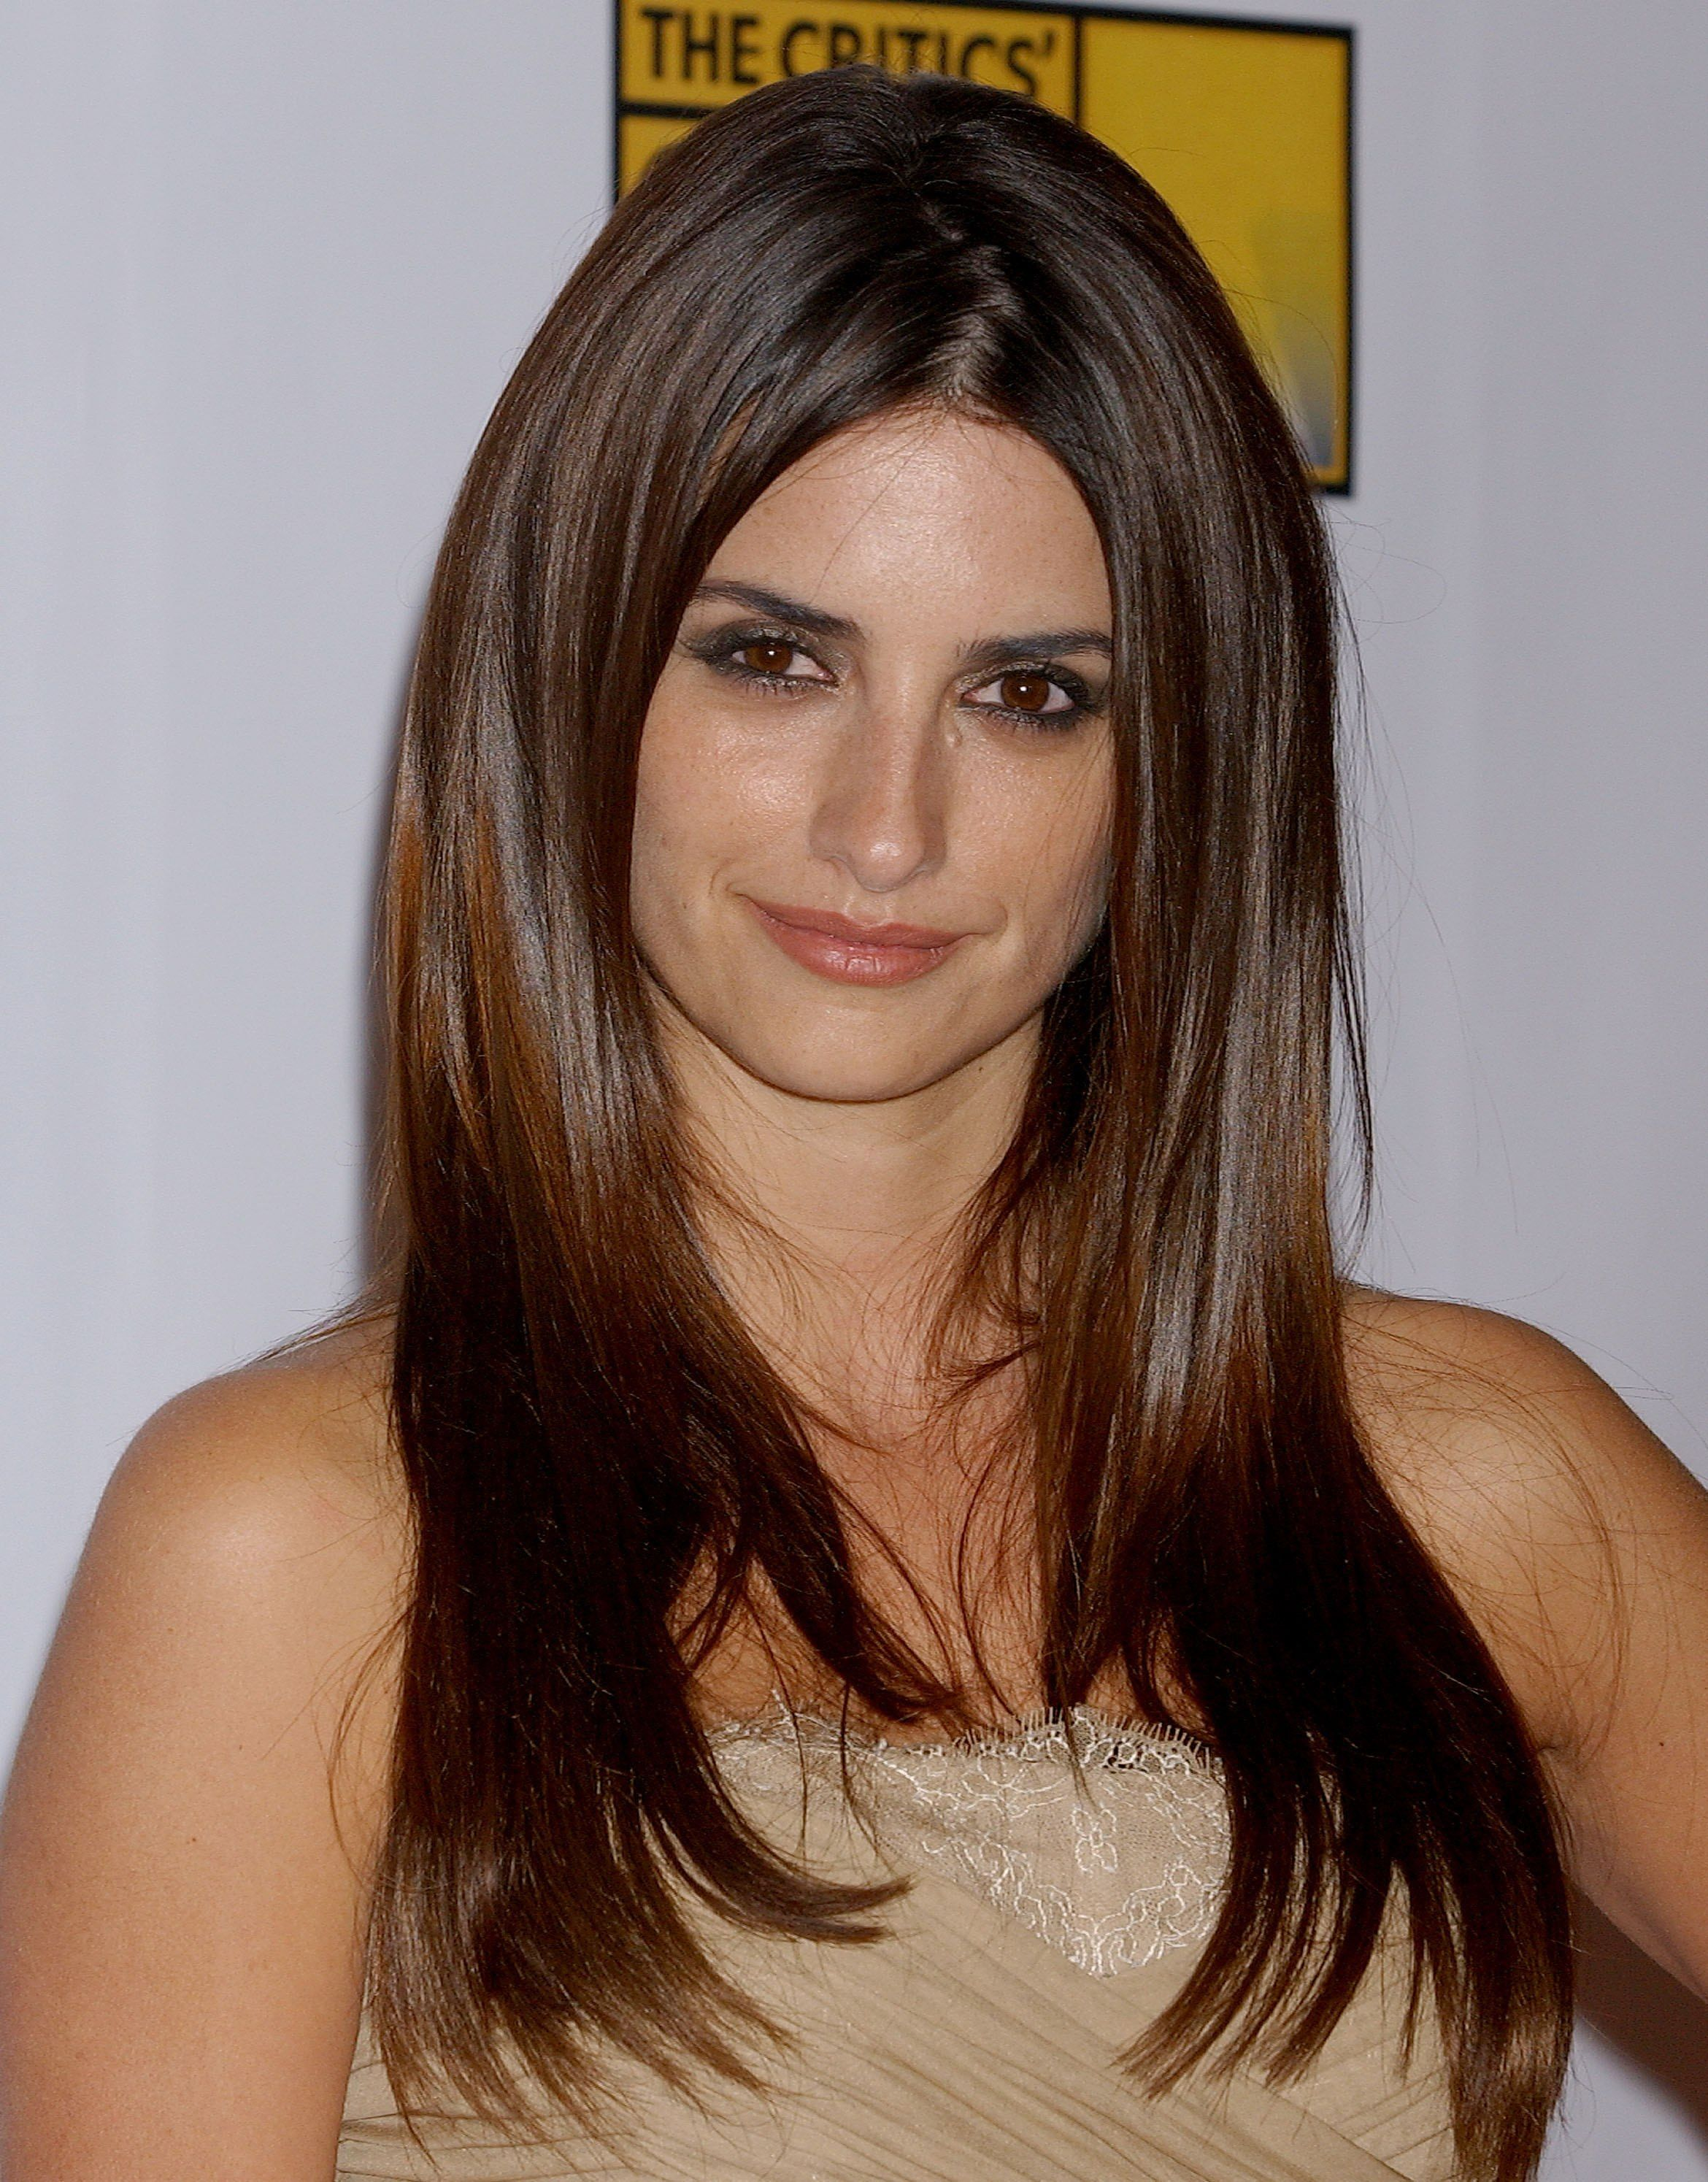 How To Get Penelope Cruz Hair Penelope Cruz Short Hair Hair Colour Hair Up Penelope Cruz Armpit Hair Penelope Cruz Long Hair Styles Hair Styles Formal Ponytail